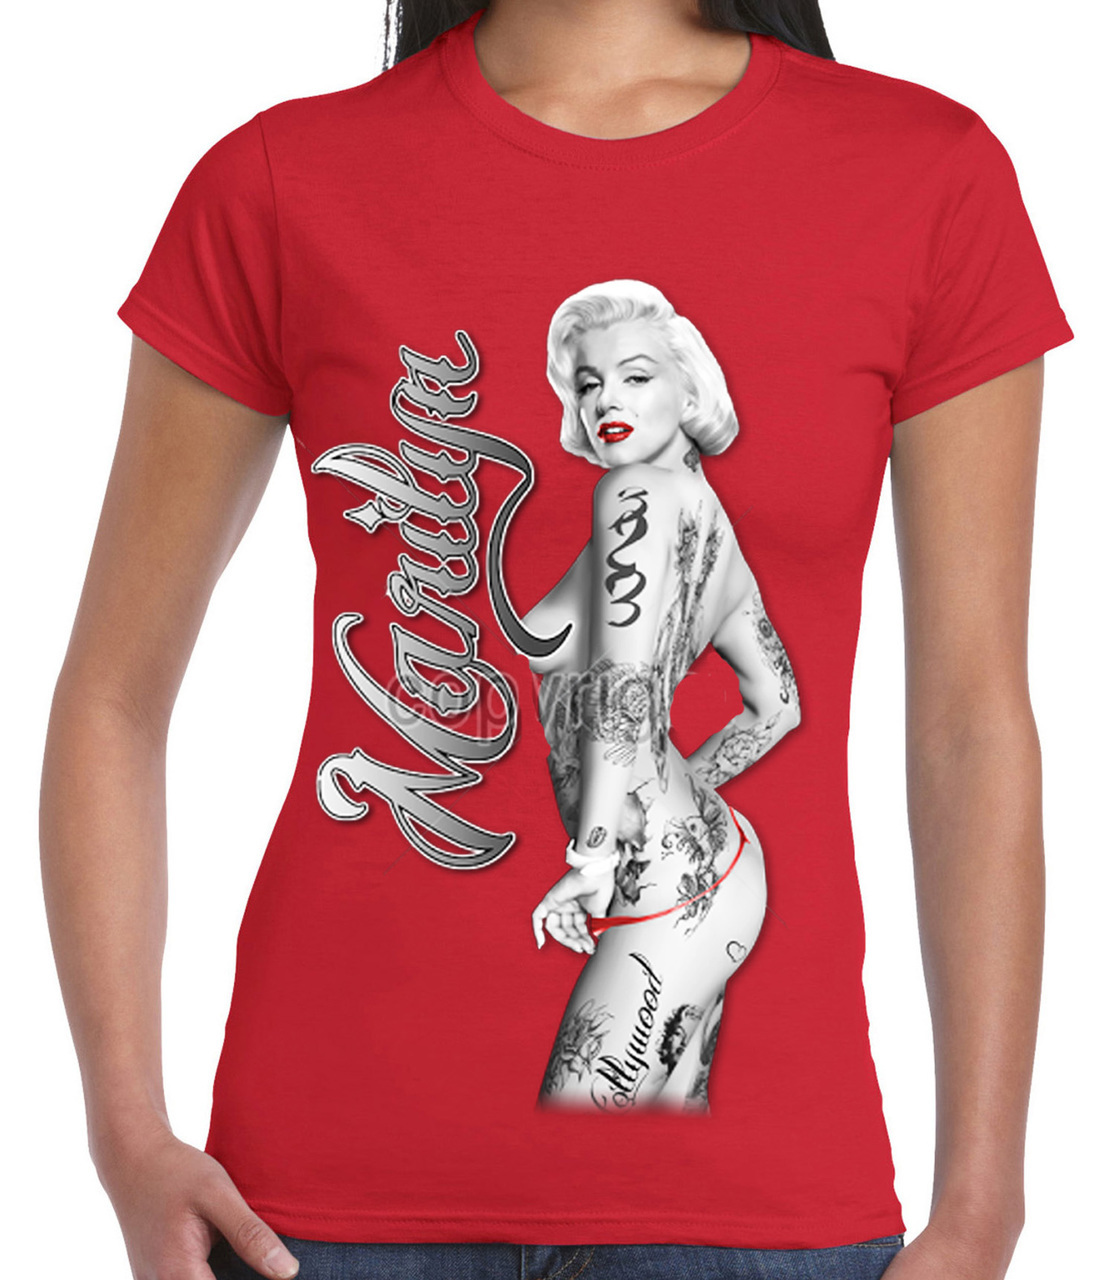 Marilyn Monroe Nude With Tattoos T-Shirt